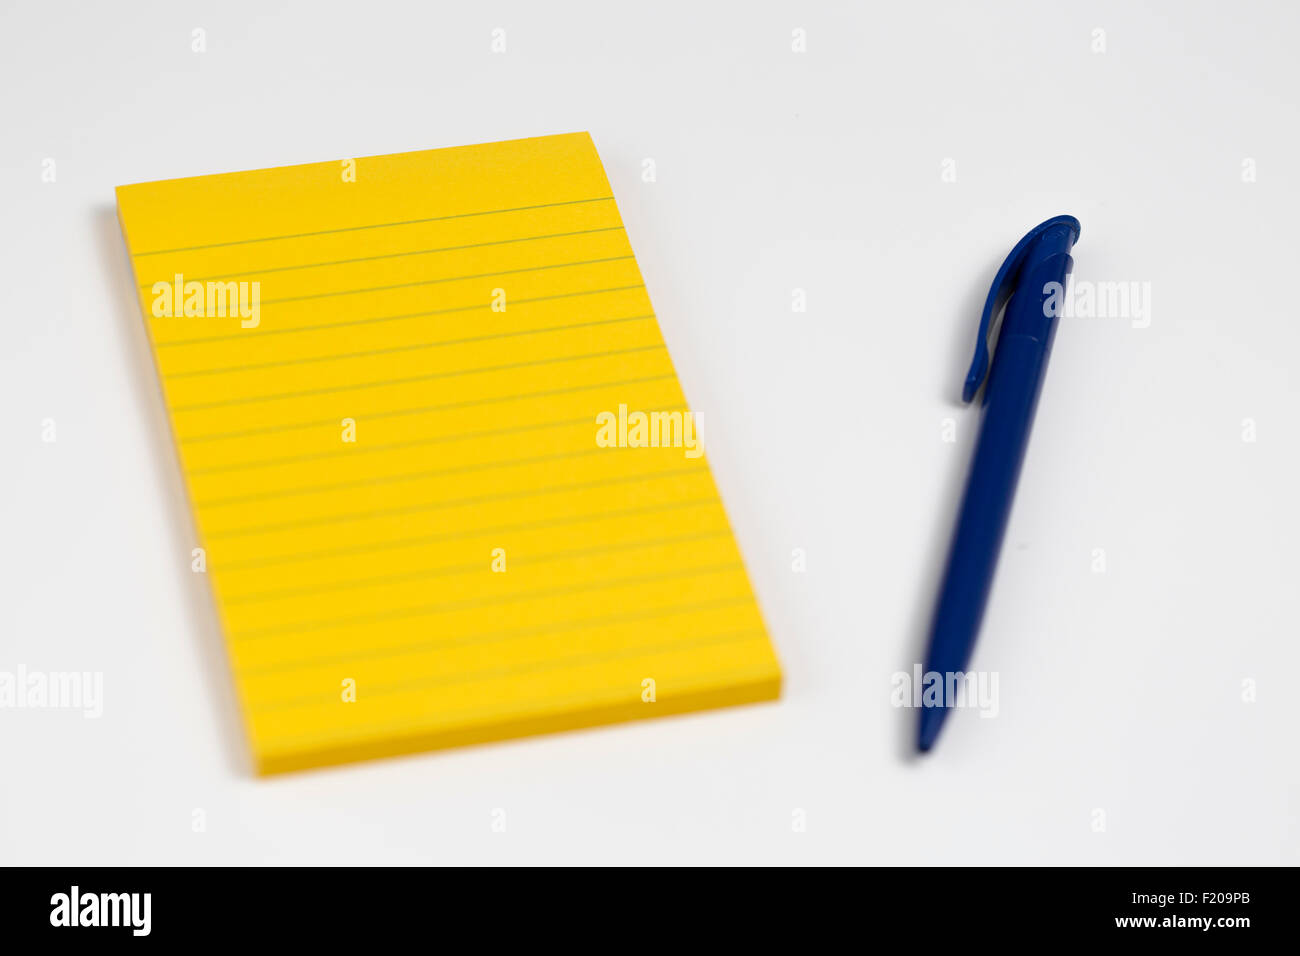 Pad and Pens Notepad - Stock Image